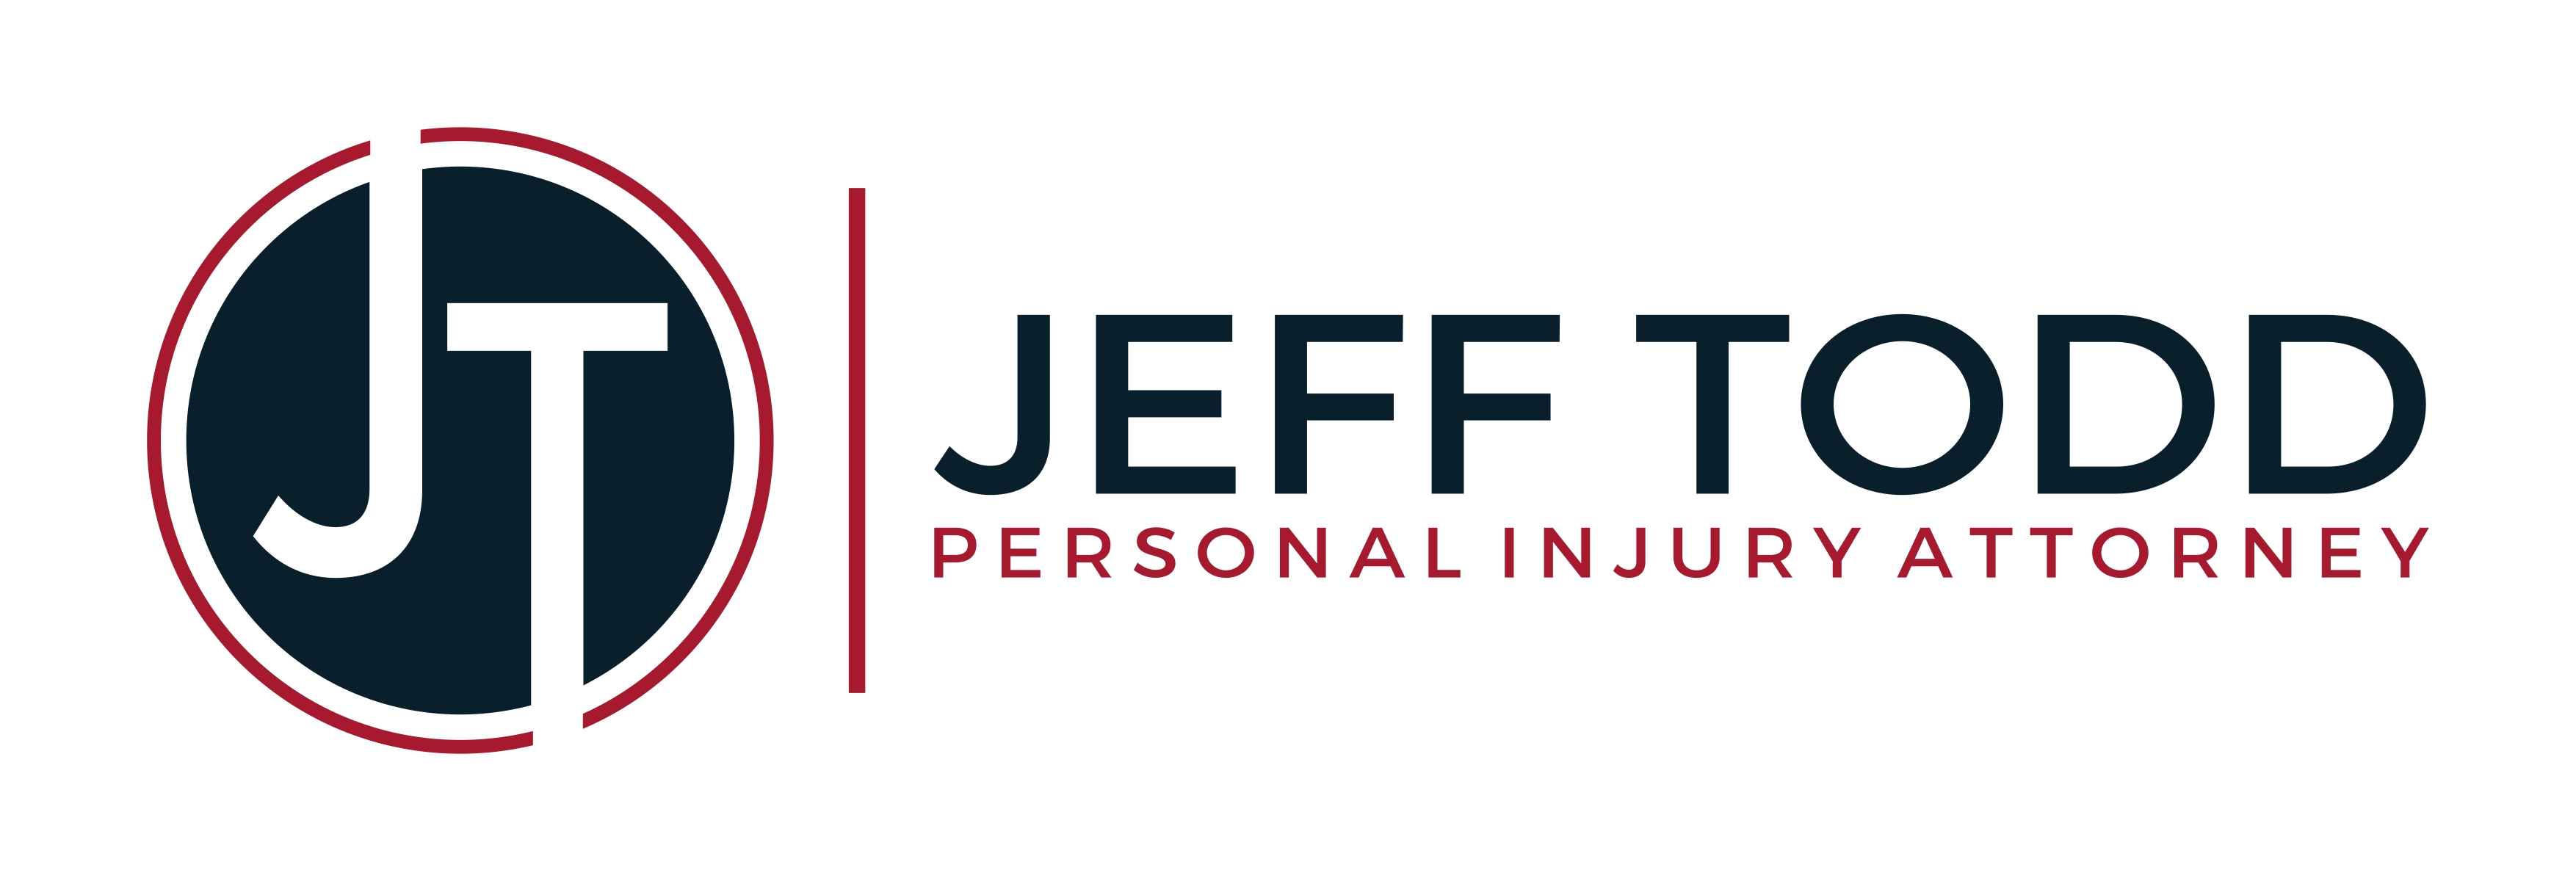 Jeff Todd, Personal Injury Attorney